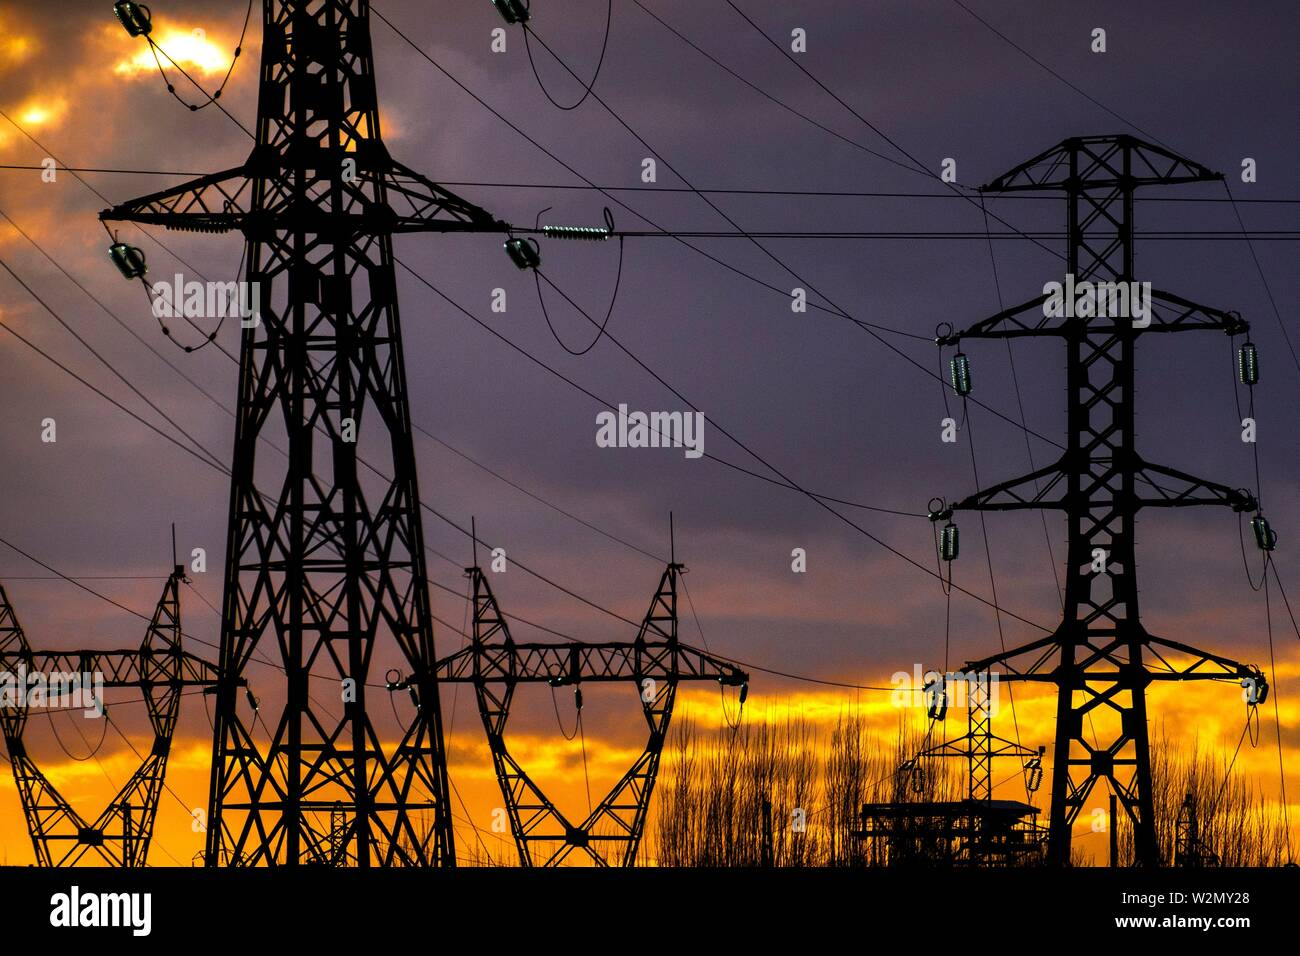 Electricity pylons at sunset - Stock Image